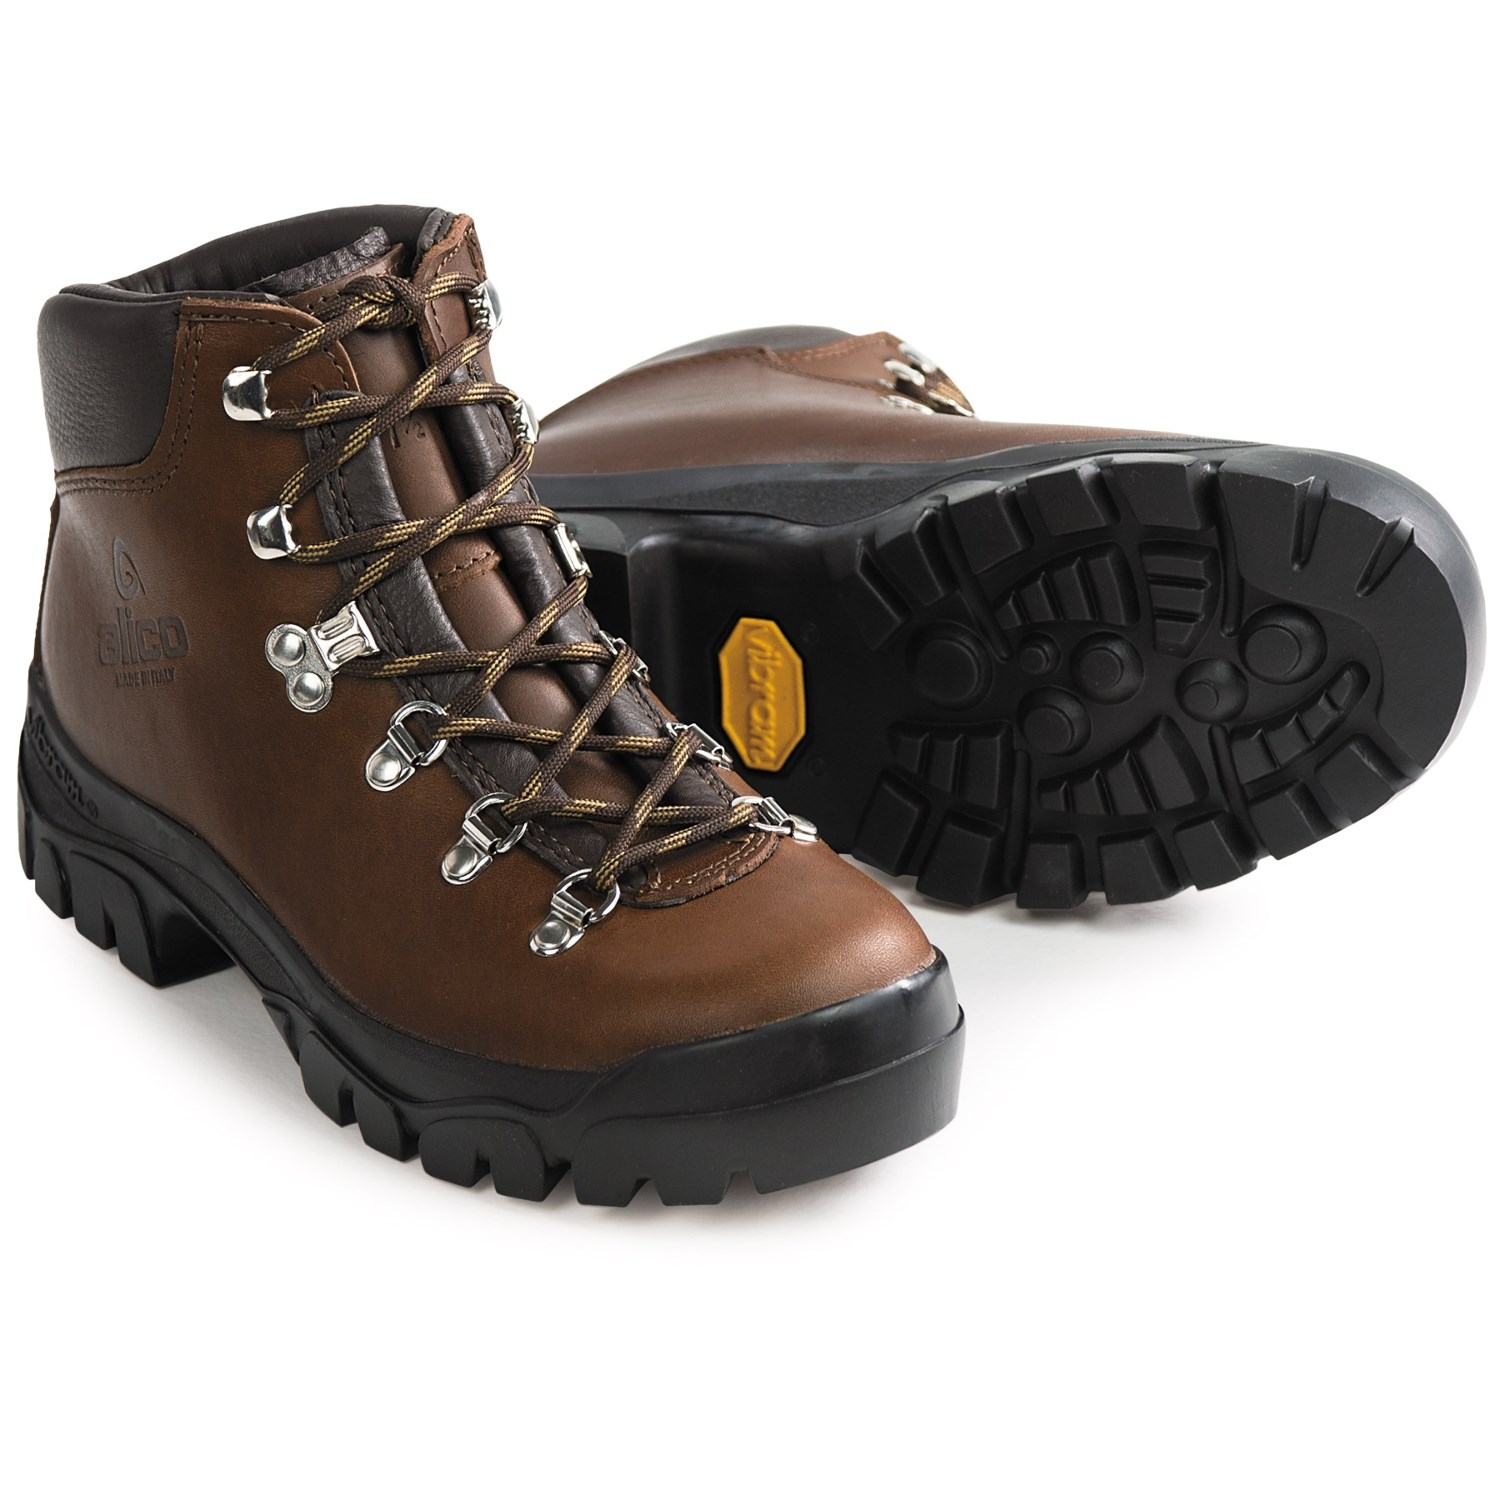 Beautiful Full Size Image Click To Close Full Size Keen 0997 Womens Brown Leather Mid Hiking Boots Shoes 11 Medium B,m Bhfo Manufacturer Keen Size 11 Medium B,m Manufacturer Color Browngreen Retail Condition Preowned Style